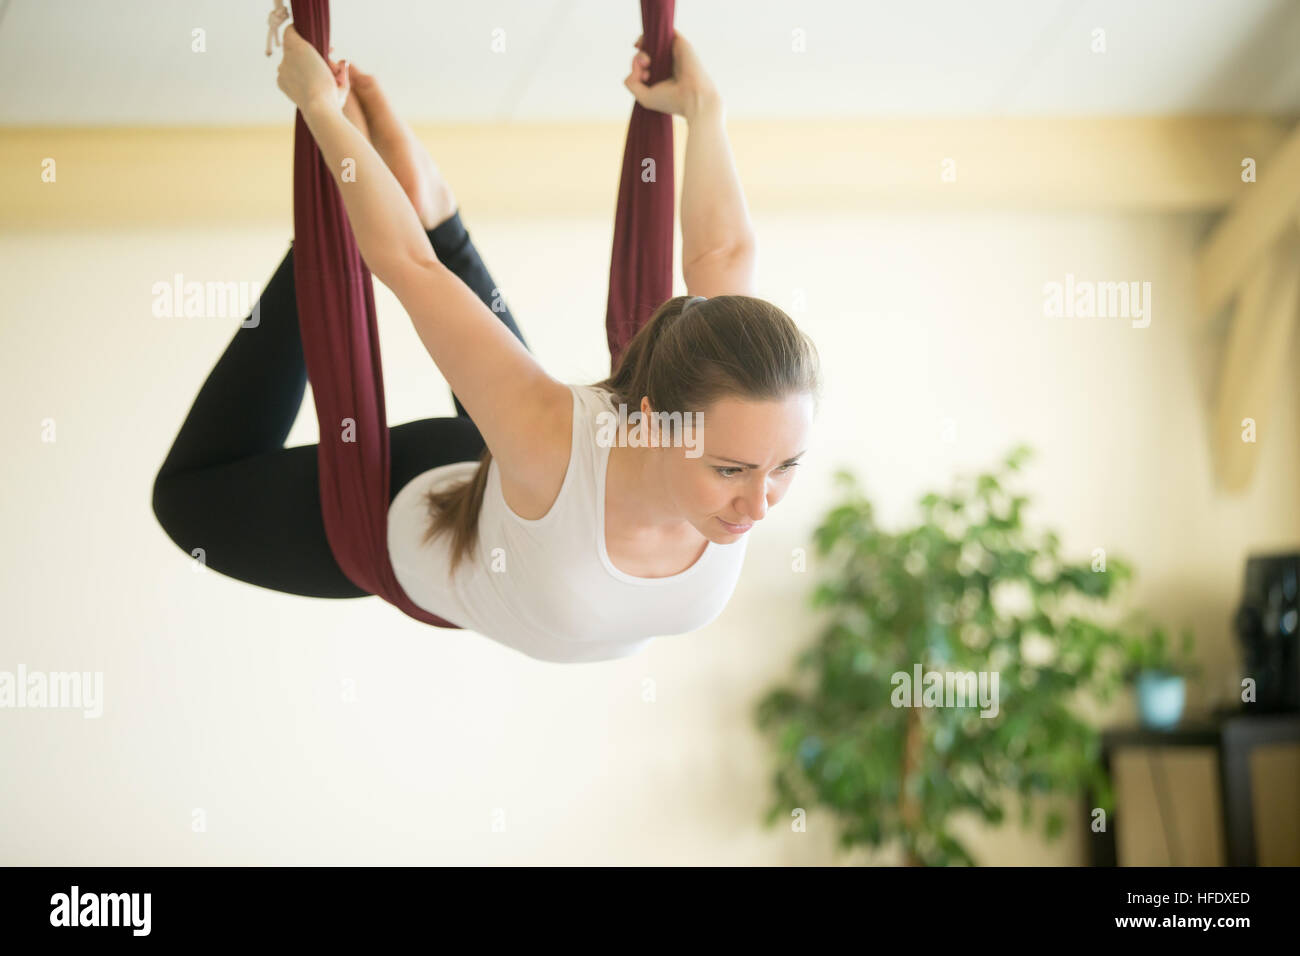 Aerial Yoga Flying In Hammock Stock Photo Royalty Free